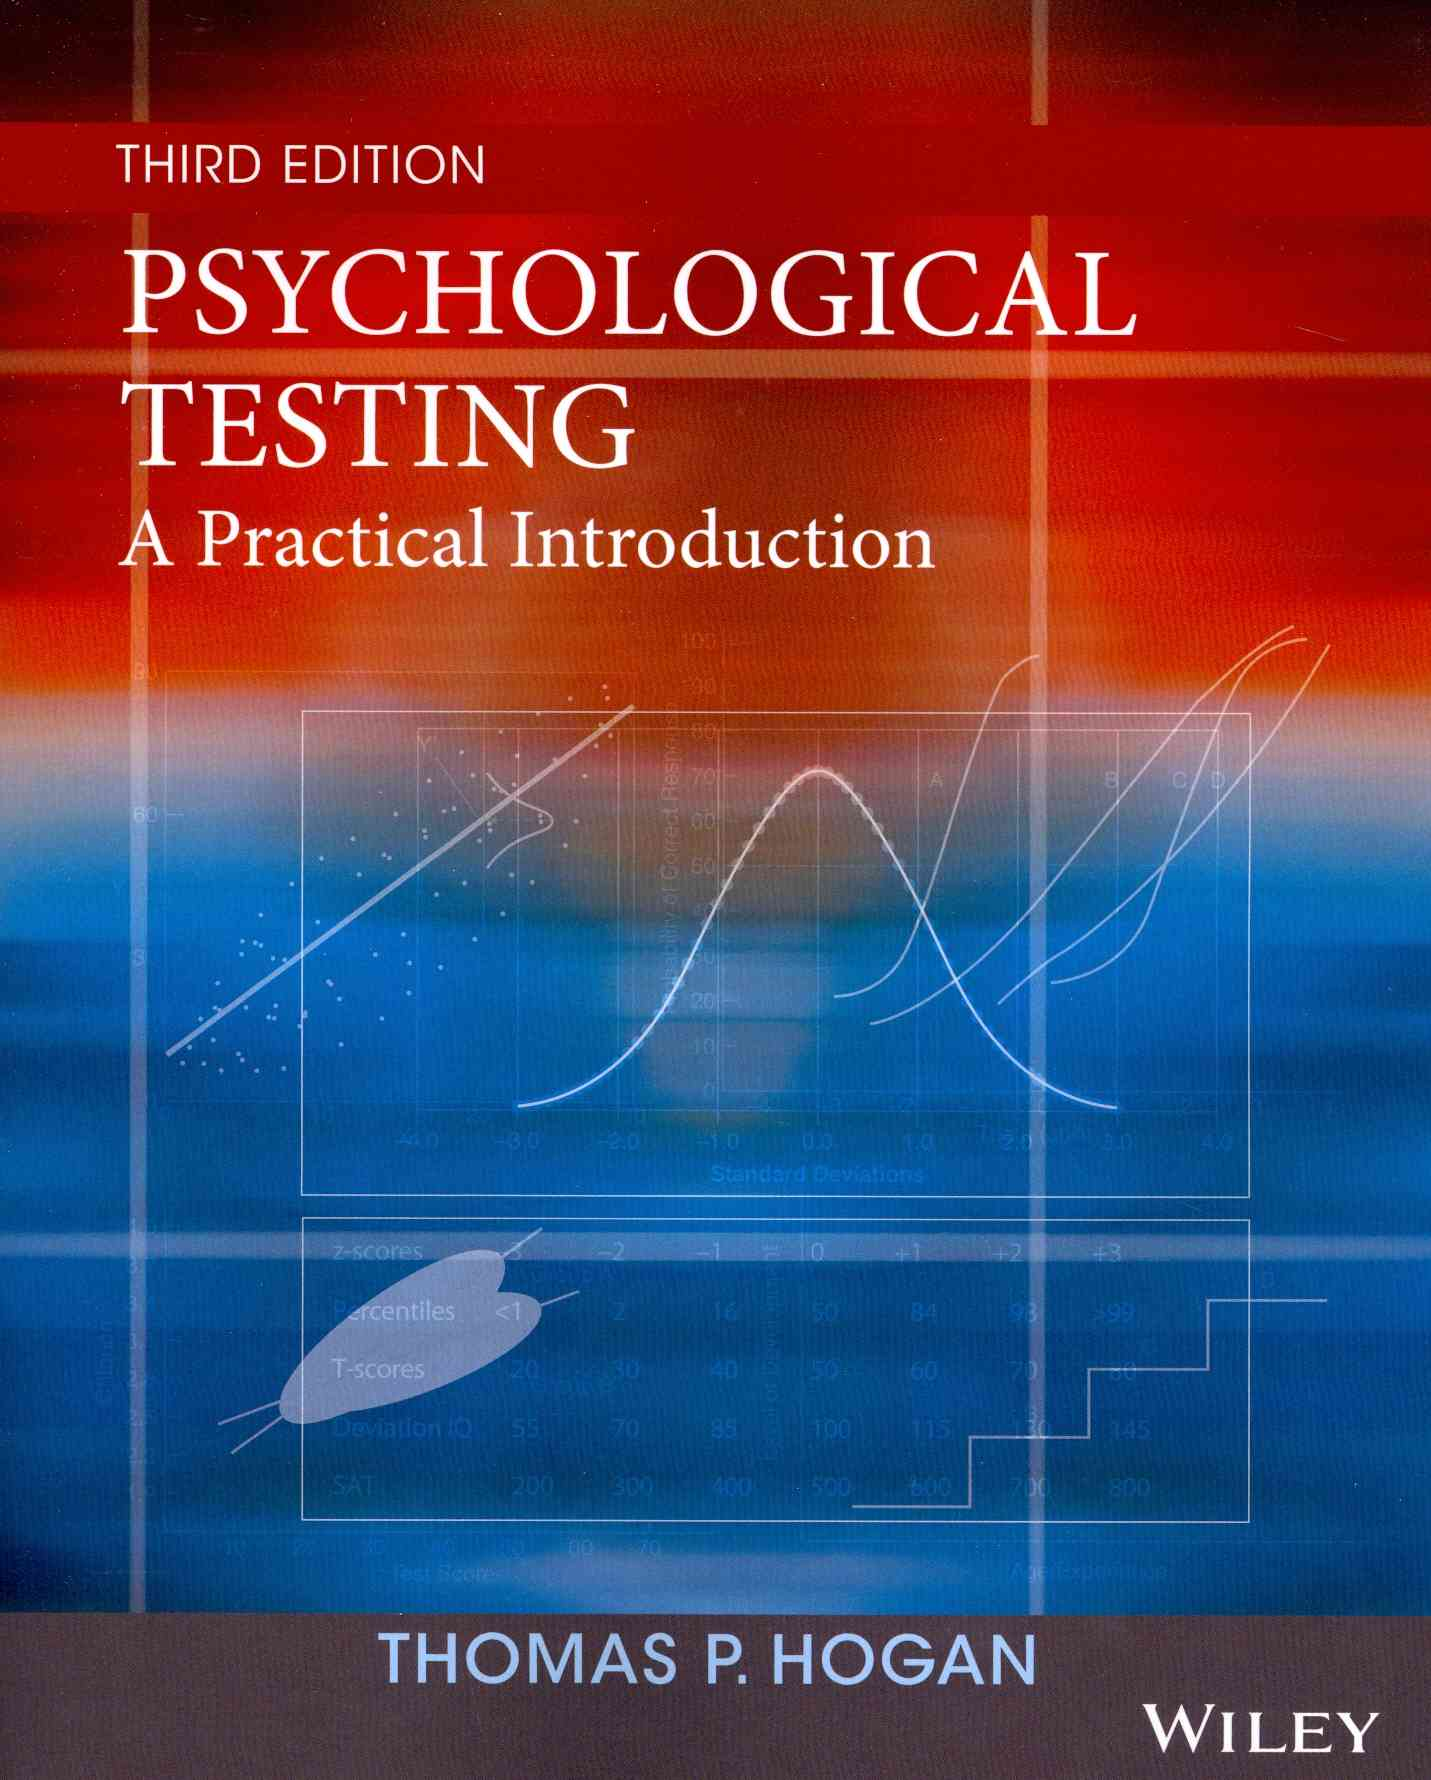 Psychological Testing By Hogan, Thomas P.